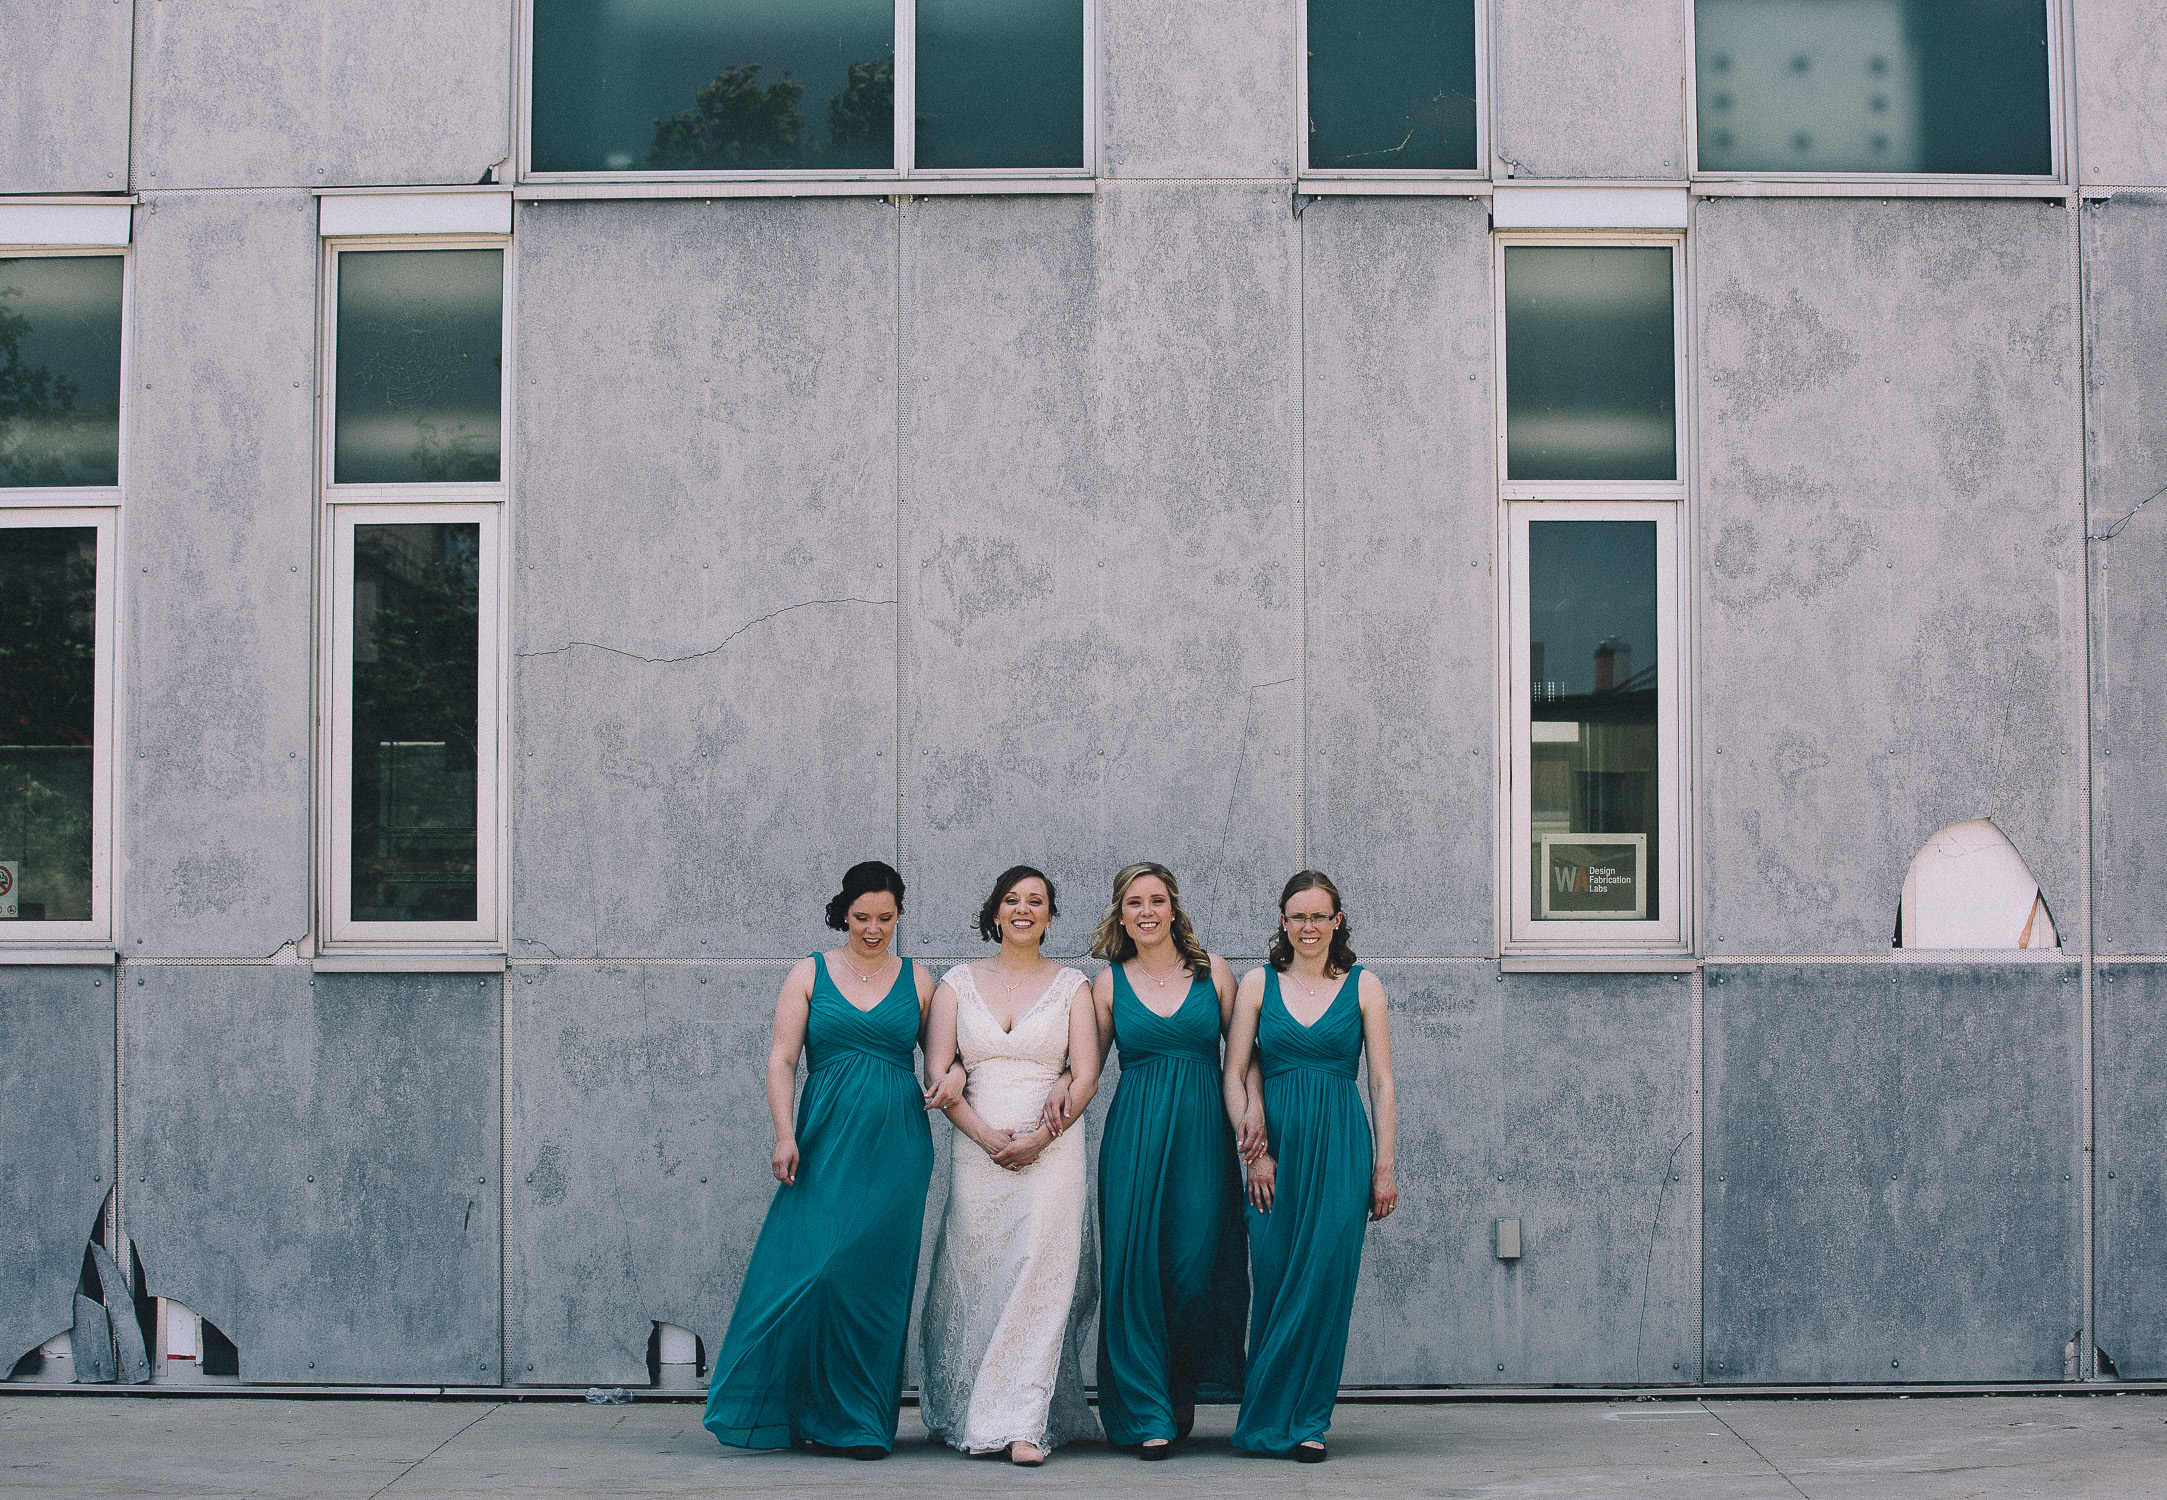 Bride in lace wedding gown and bridesmaids wearing teal dresses walking in downtown Cambridge during a summer wedding